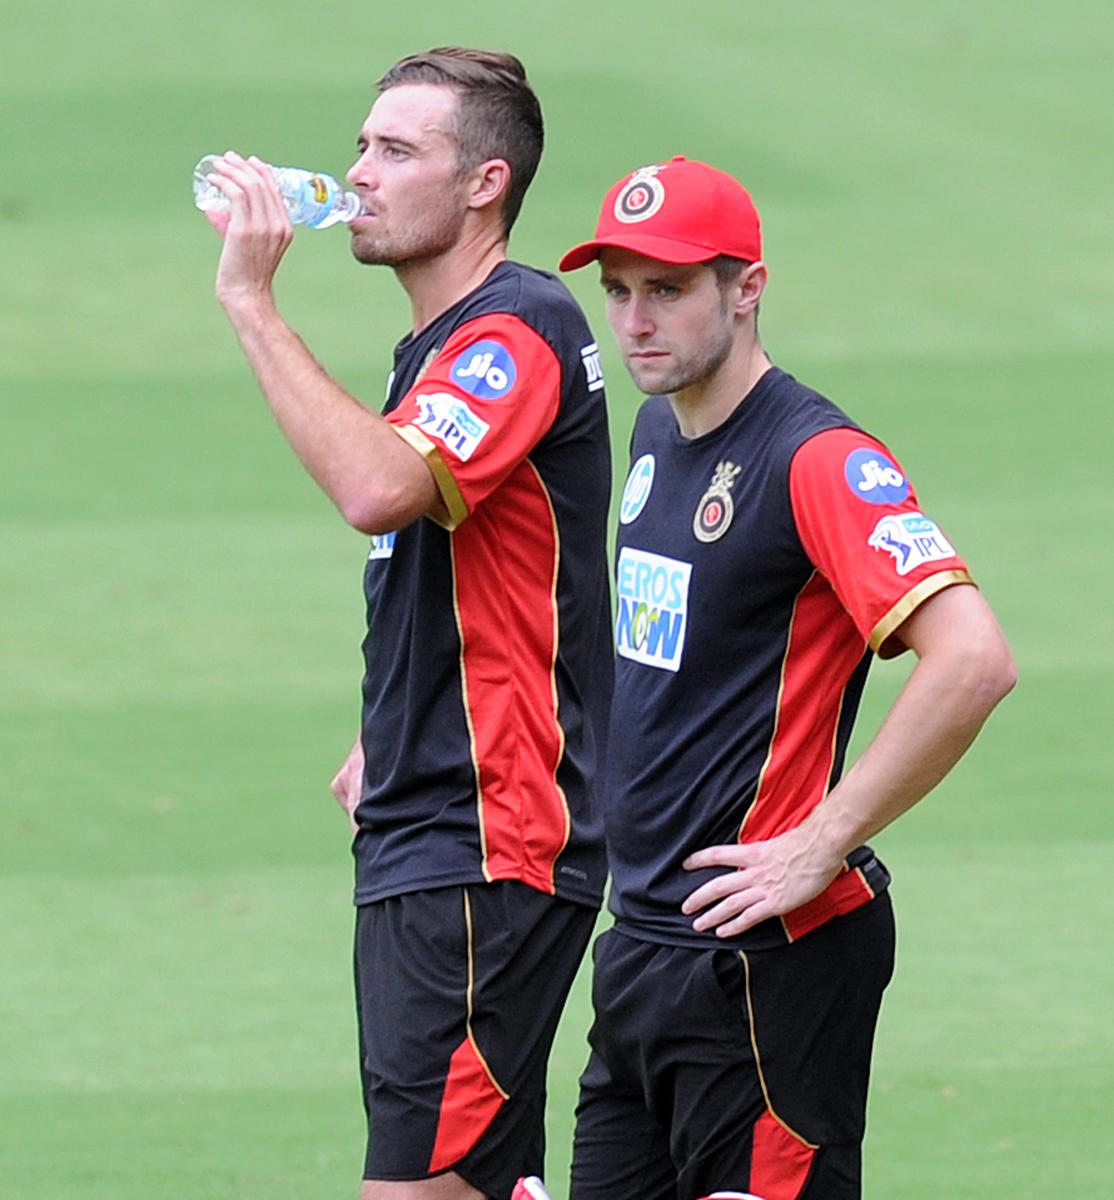 RCB pacemen Tim Southee (left) and Chris Wokes during a practice session at the M Chinnaswamy Stadium in Bengaluru on Monday. DH Photo/ Srikanta Sharma R